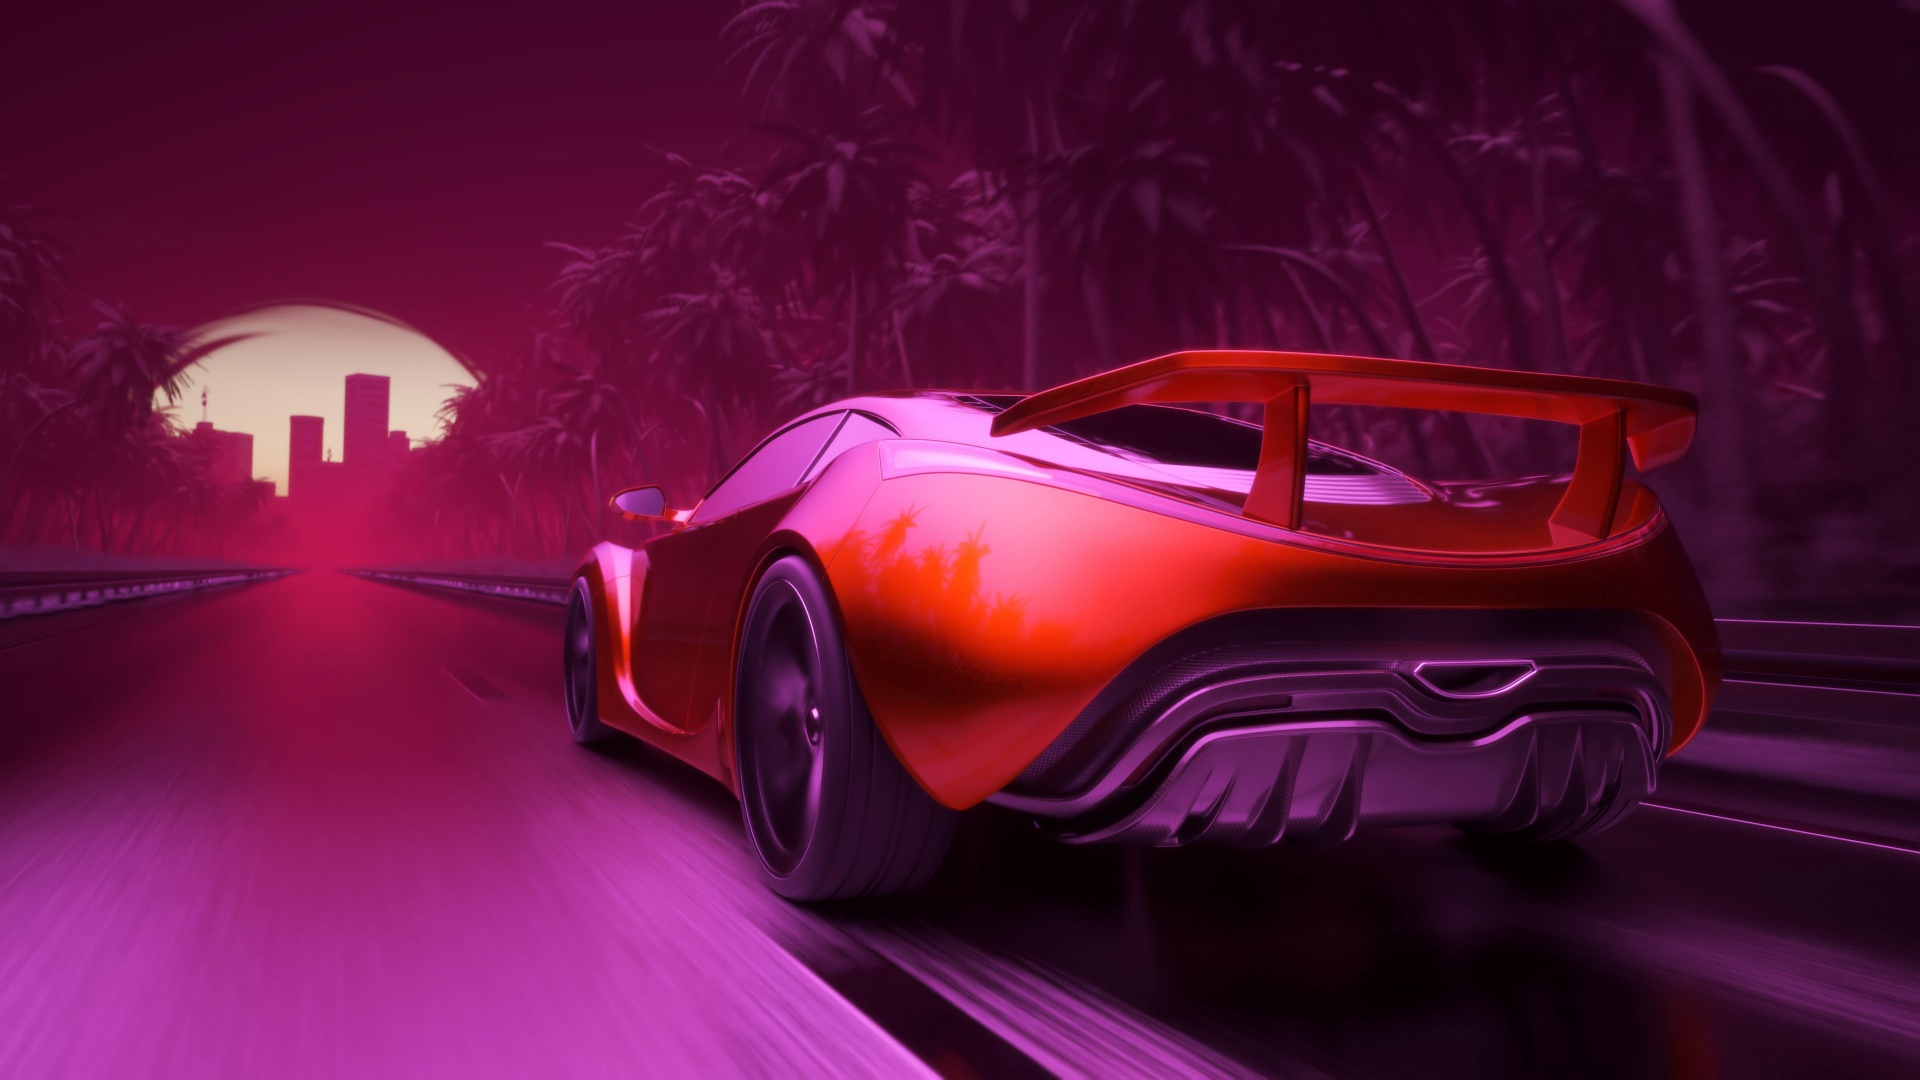 Sport Wallpapers For Iphone 6: 1080x1920 Synthwave Sport Car Artwork Iphone 7,6s,6 Plus